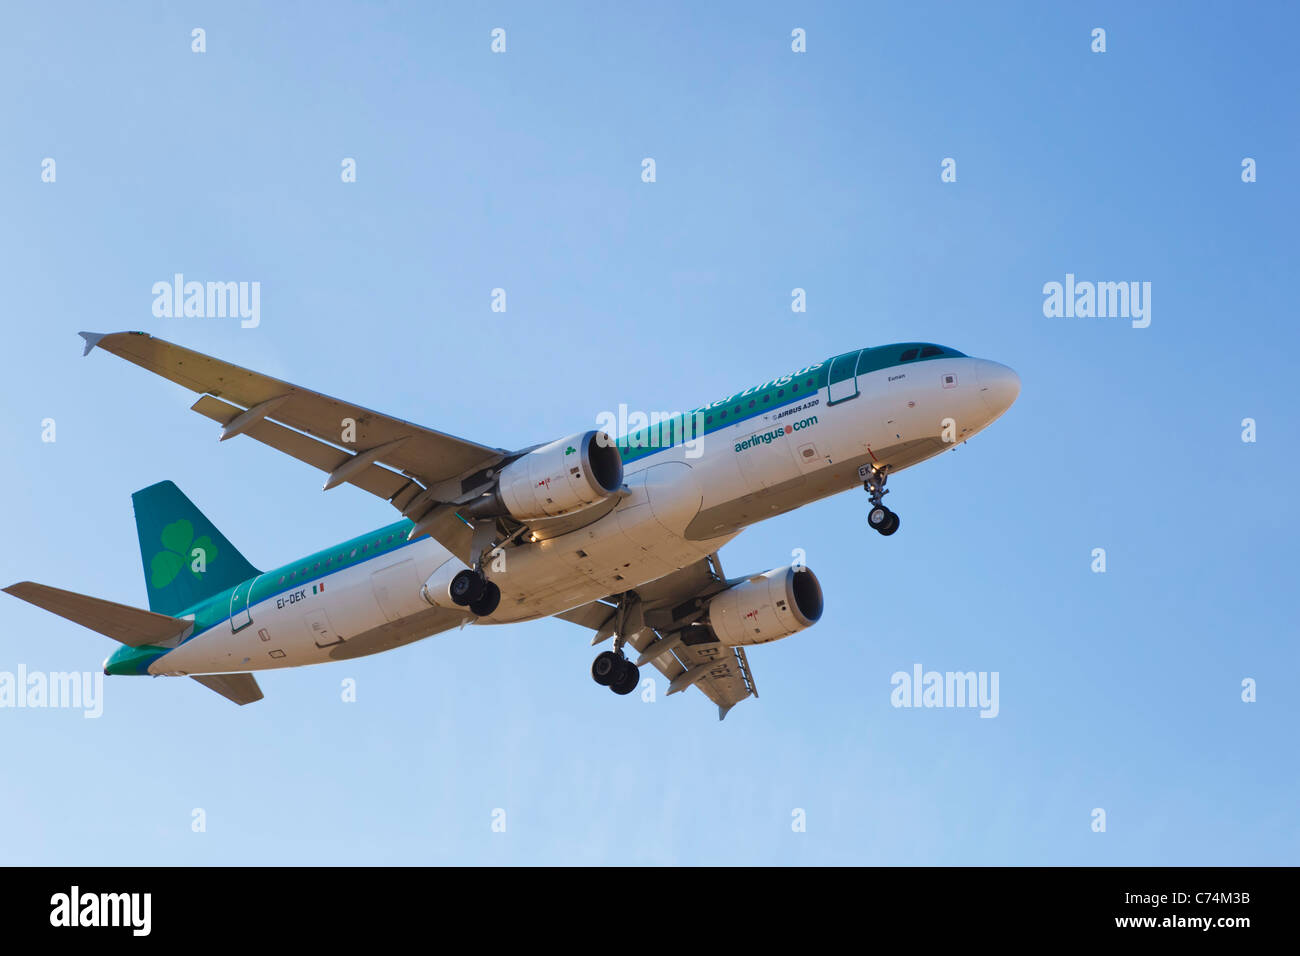 An Airbus A320-214 aircraft of the Aer Lingus fleet, named St Eunan or Eunan - Stock Image